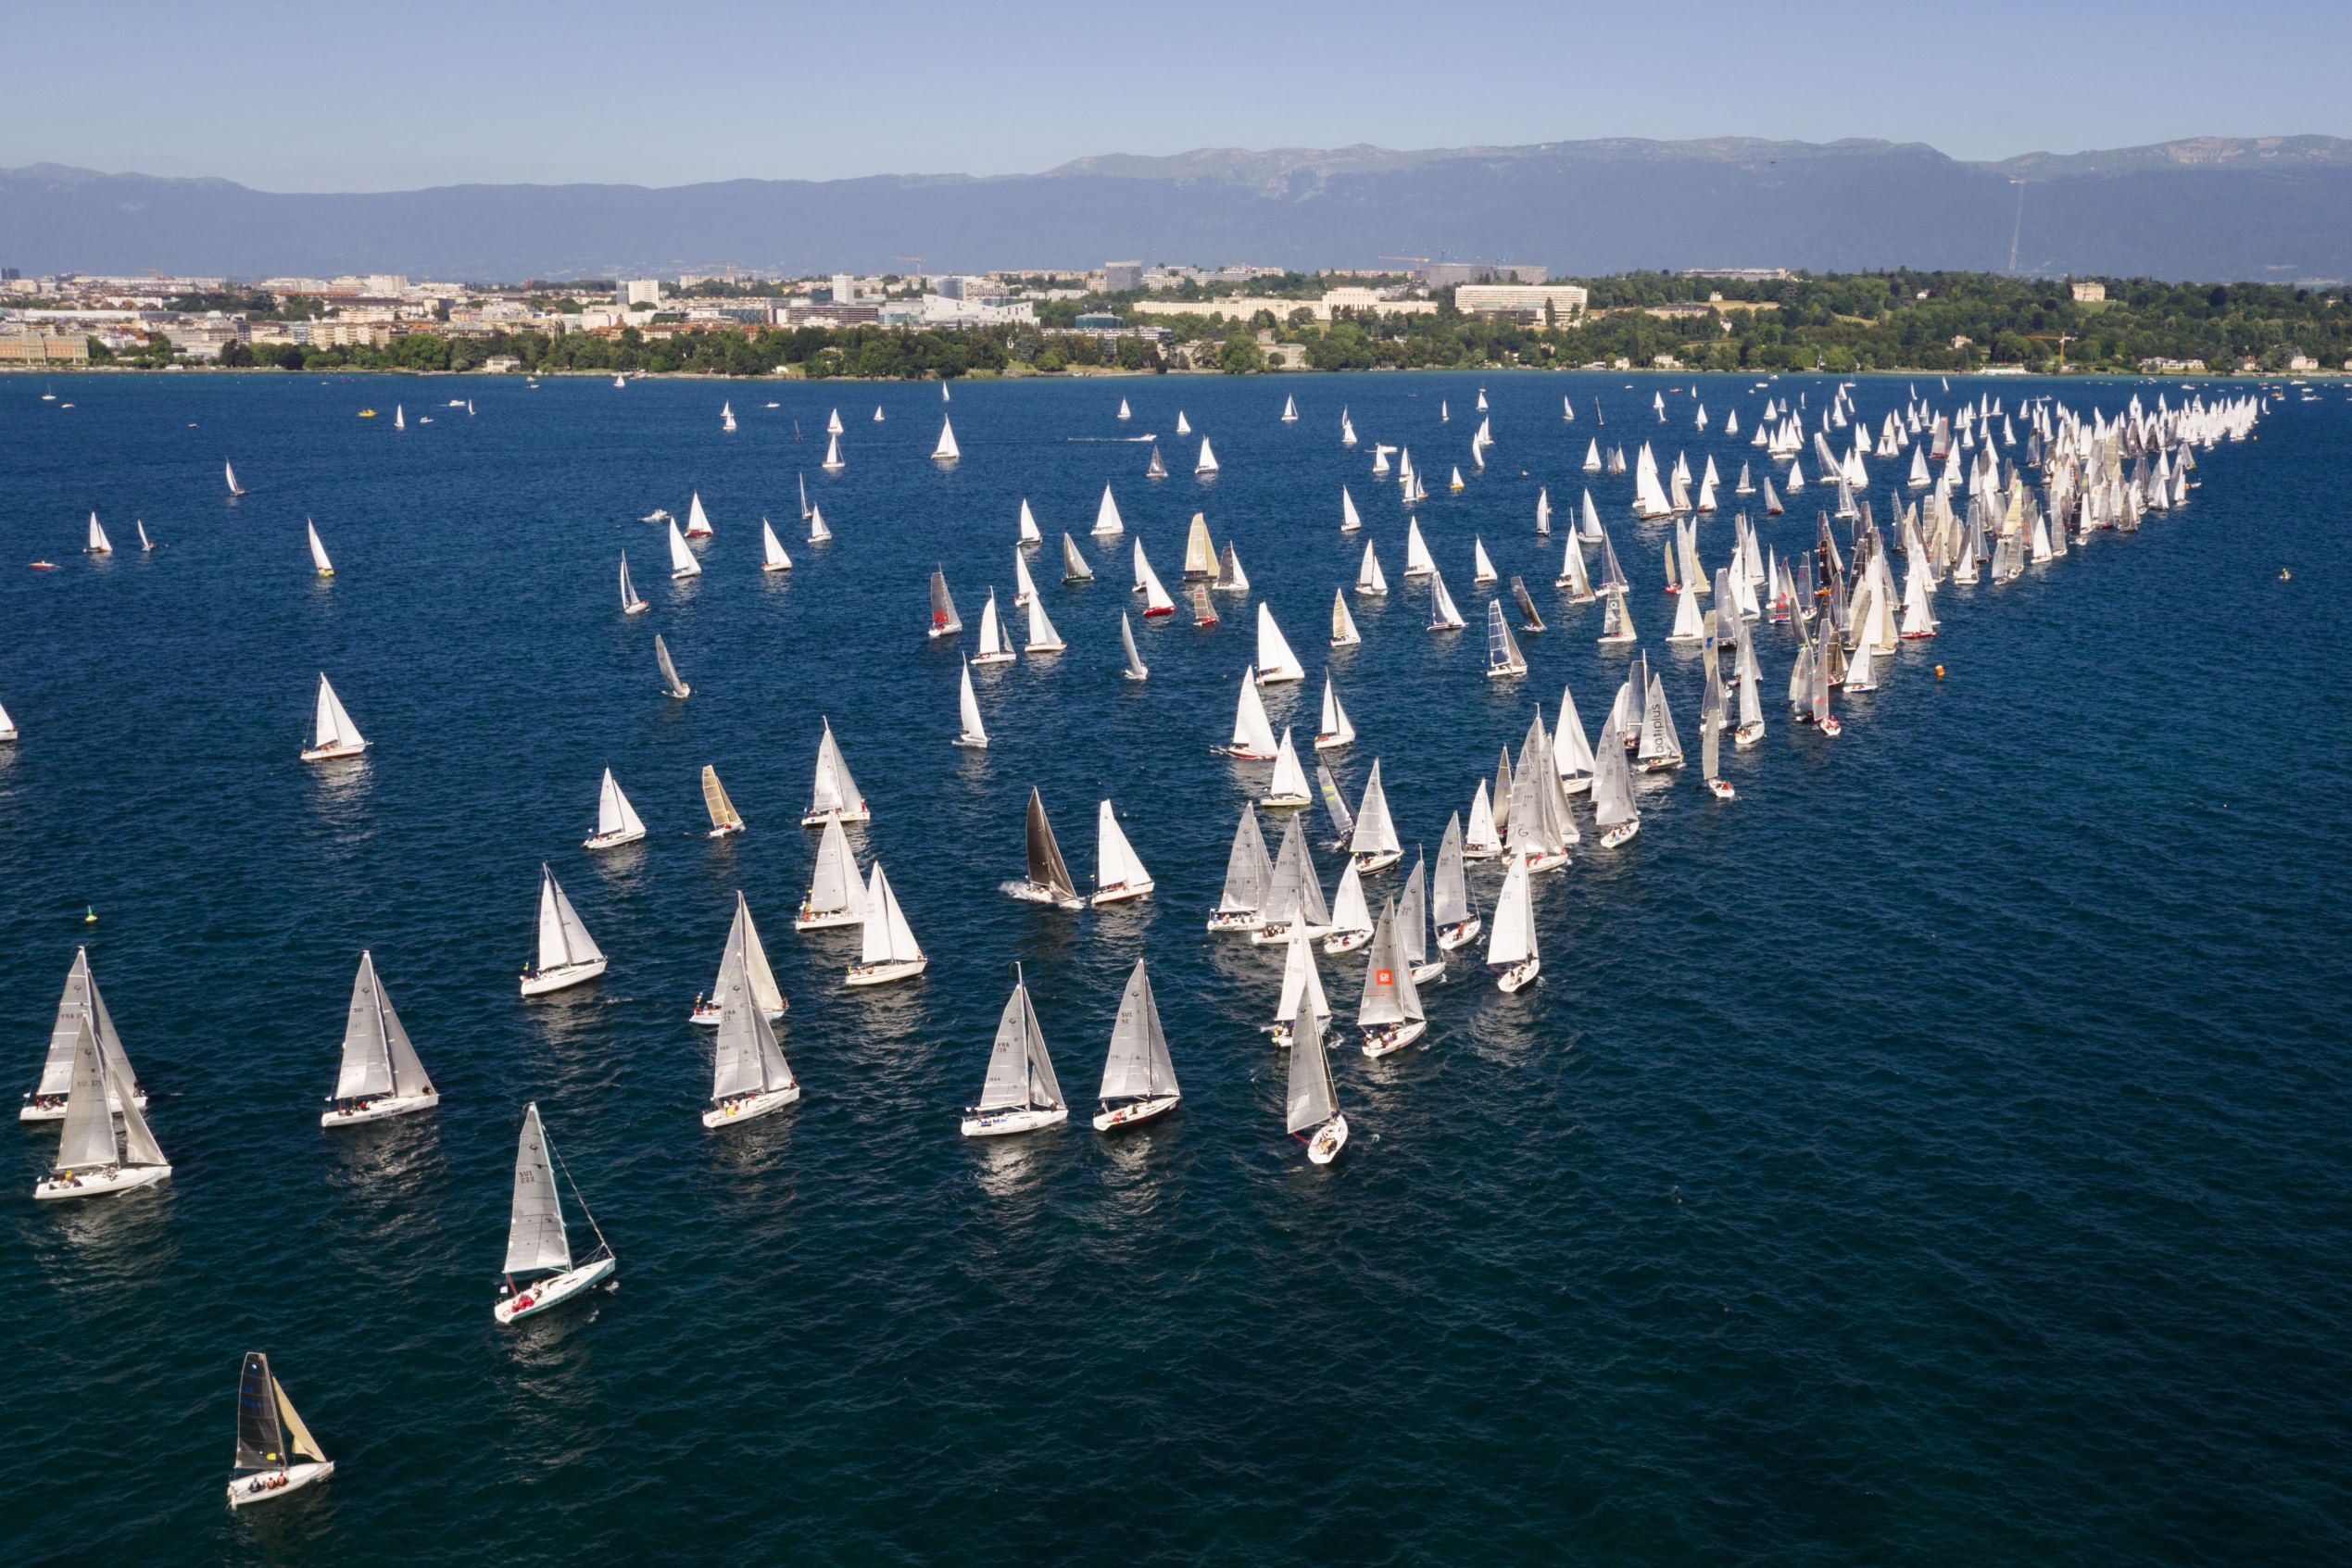 Slide 60 of 100: Photo taken with a drone shows sailboats line up on the starting line during the 79th Bol d'Or sailing race on Lake Geneva, in Geneva, Switzerland, 17 June 2017. About 550 boats participate in this weekend's Bol d'Or, the largest sailing race held on a lake in Europe.